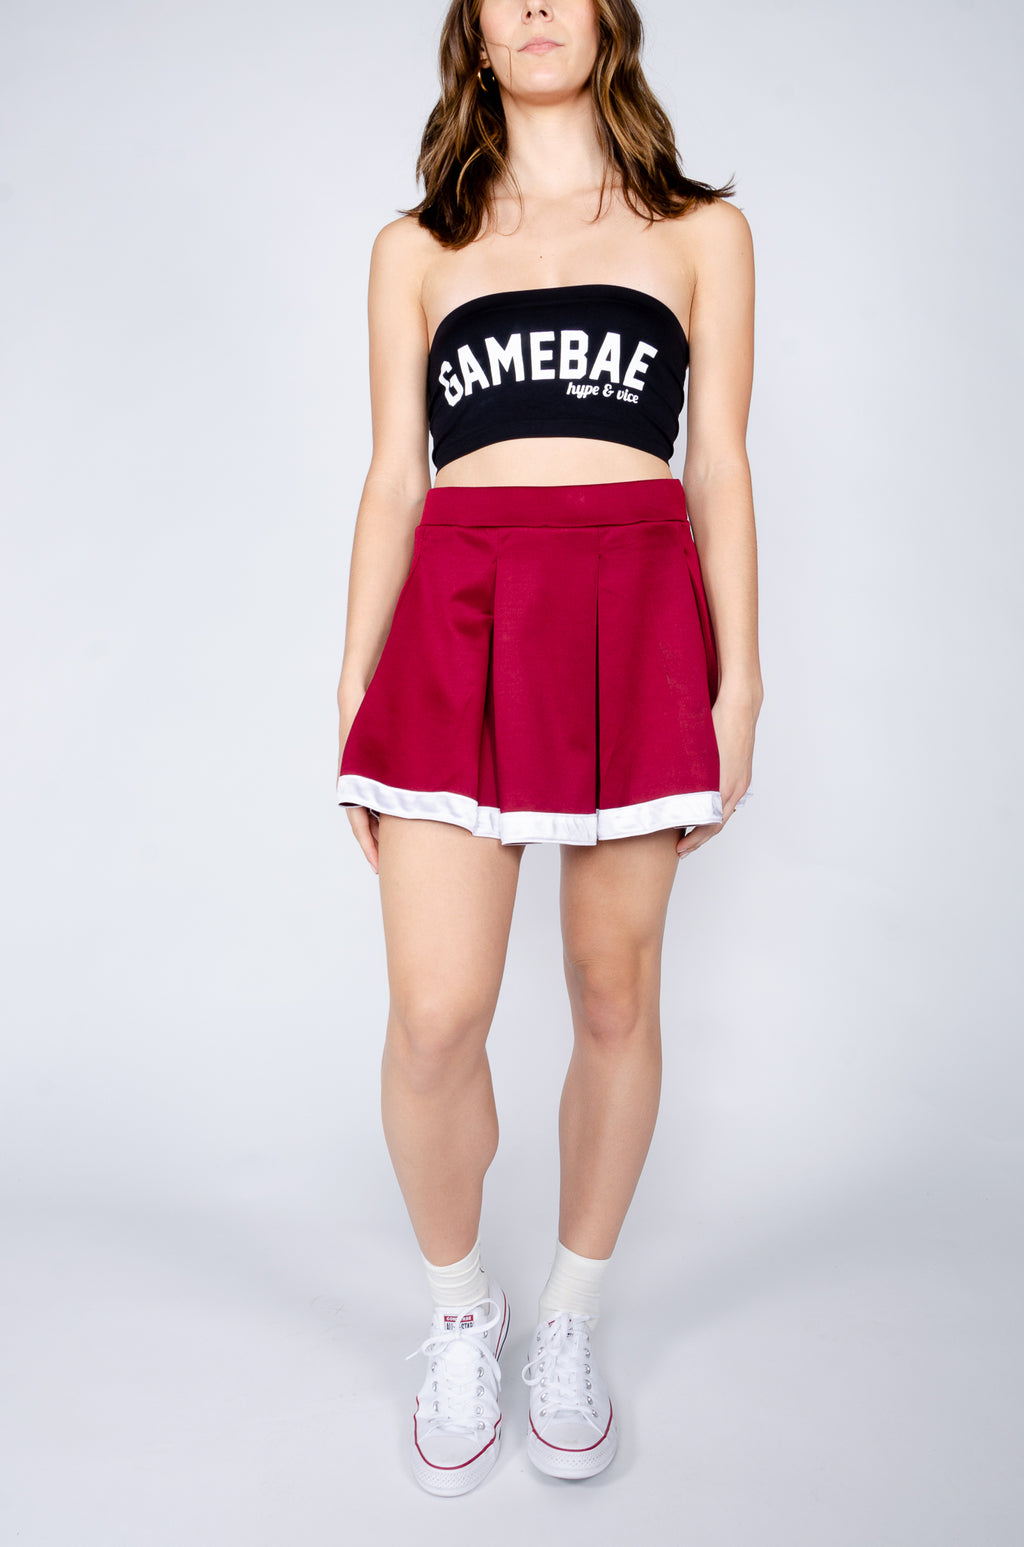 Maroon and White Tailgate Skirt - Hype and Vice